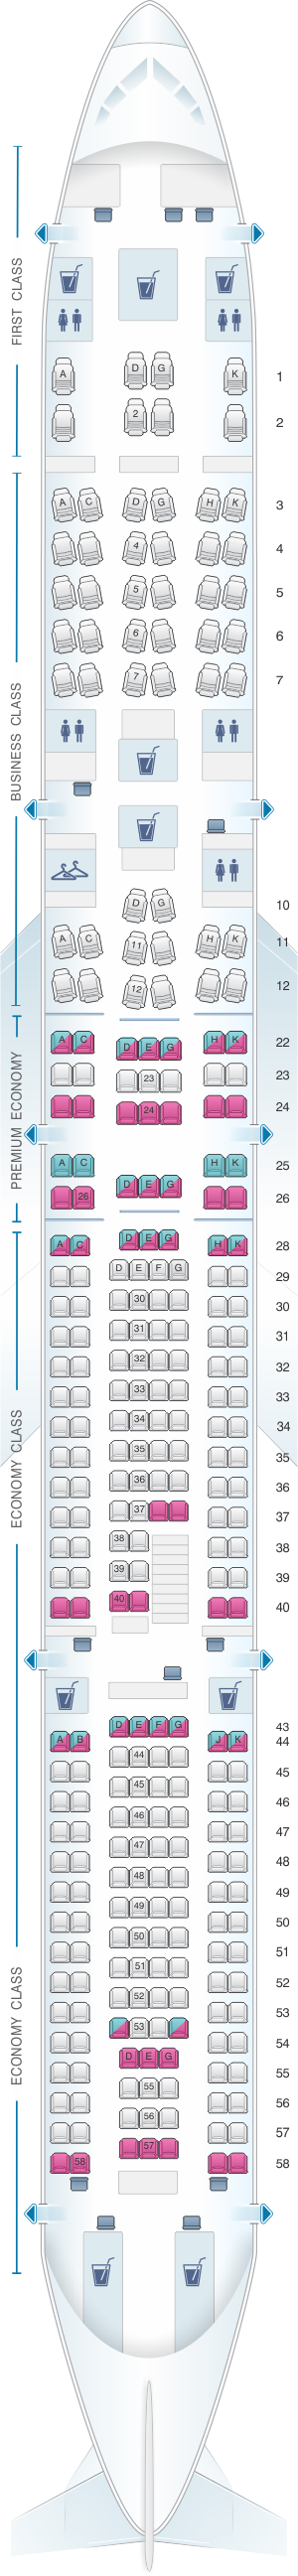 Seat map for Lufthansa Airbus A340 600 297pax